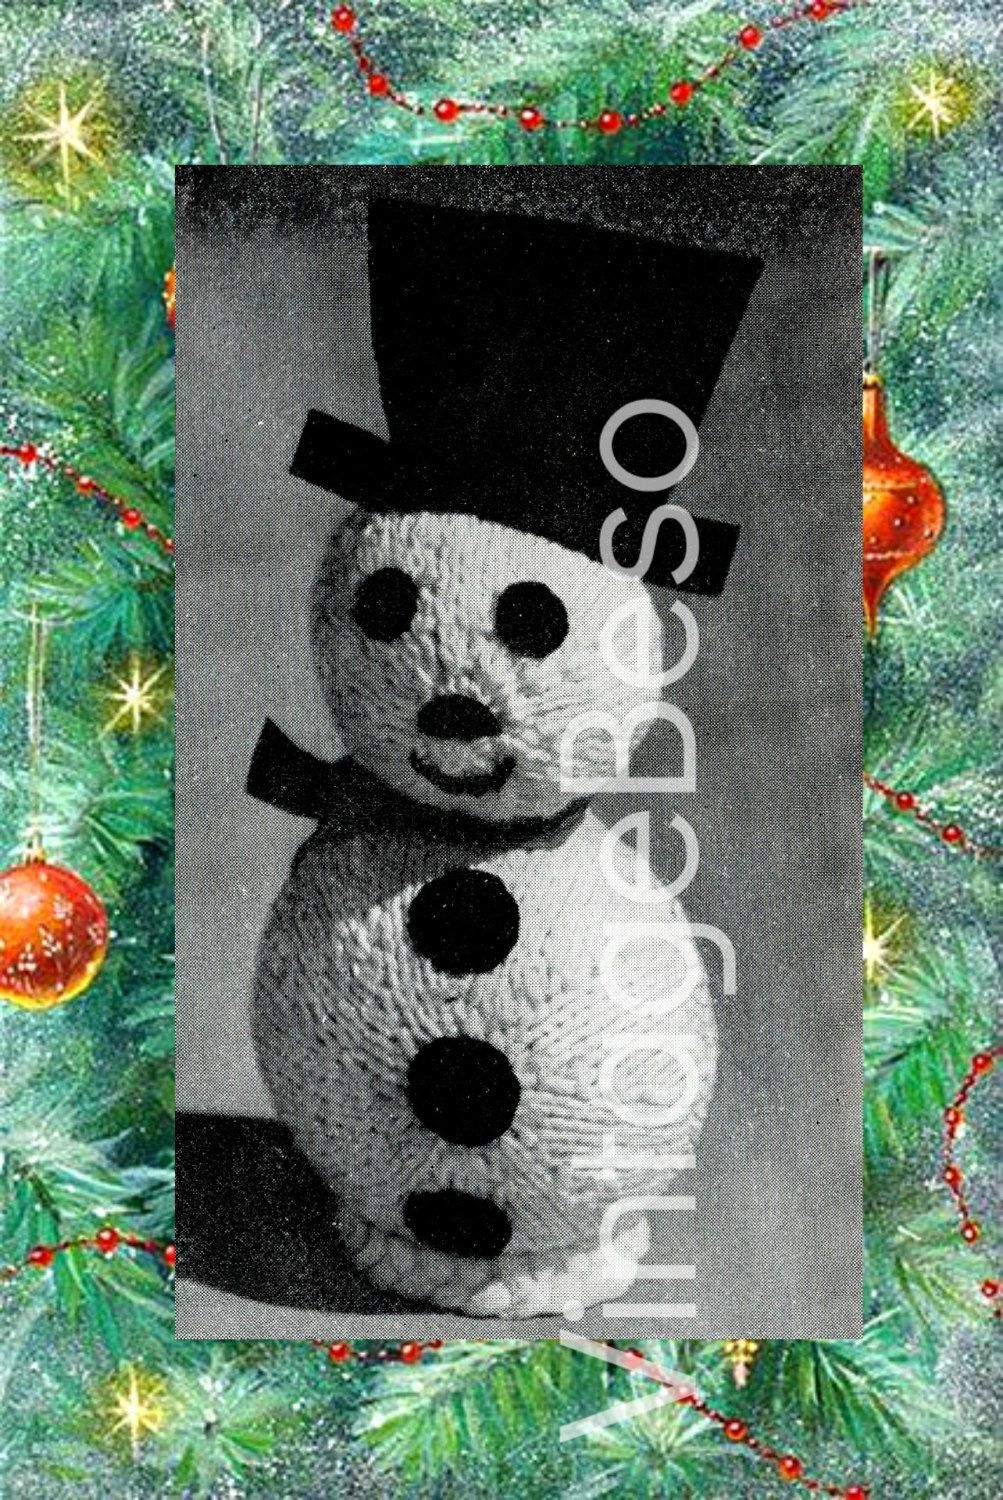 Mr Showman SNOWMAN KNITTING PATTERN 1960s Christmas Tree Ornament Gift or Holiday Wrapping Topper Holiday Season Vintage Beso Knitted by VintageBeso on Etsy